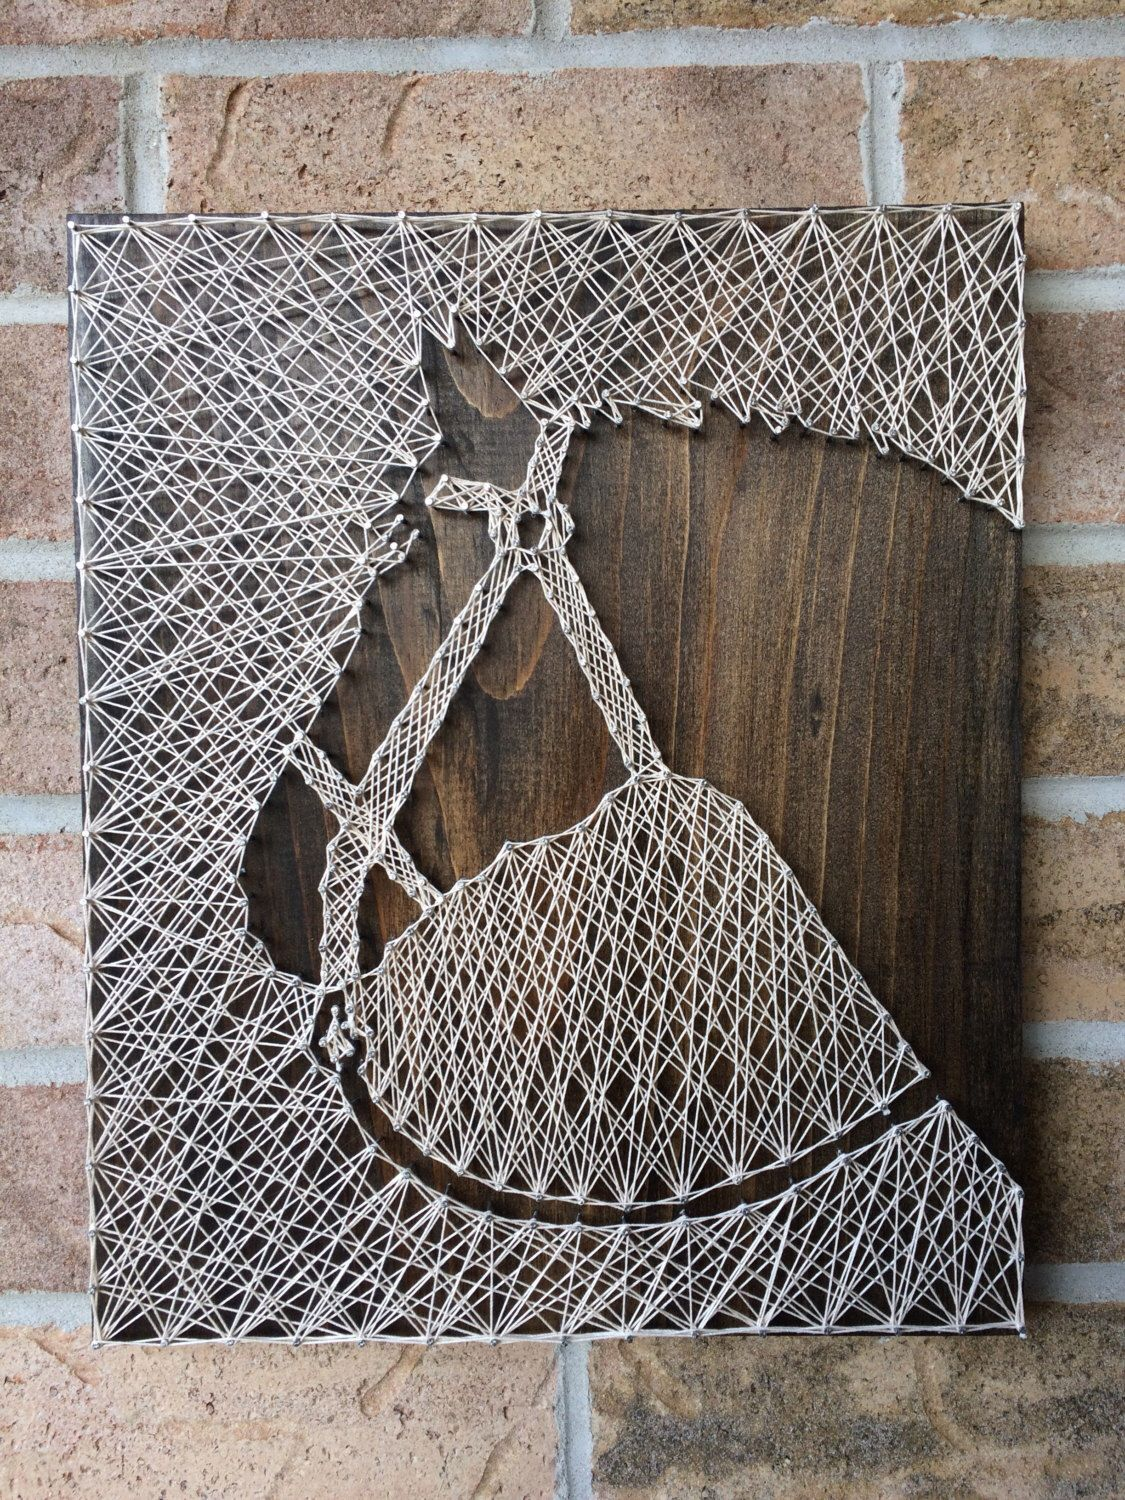 pin on naileditca string art things i 39 ve made. Black Bedroom Furniture Sets. Home Design Ideas